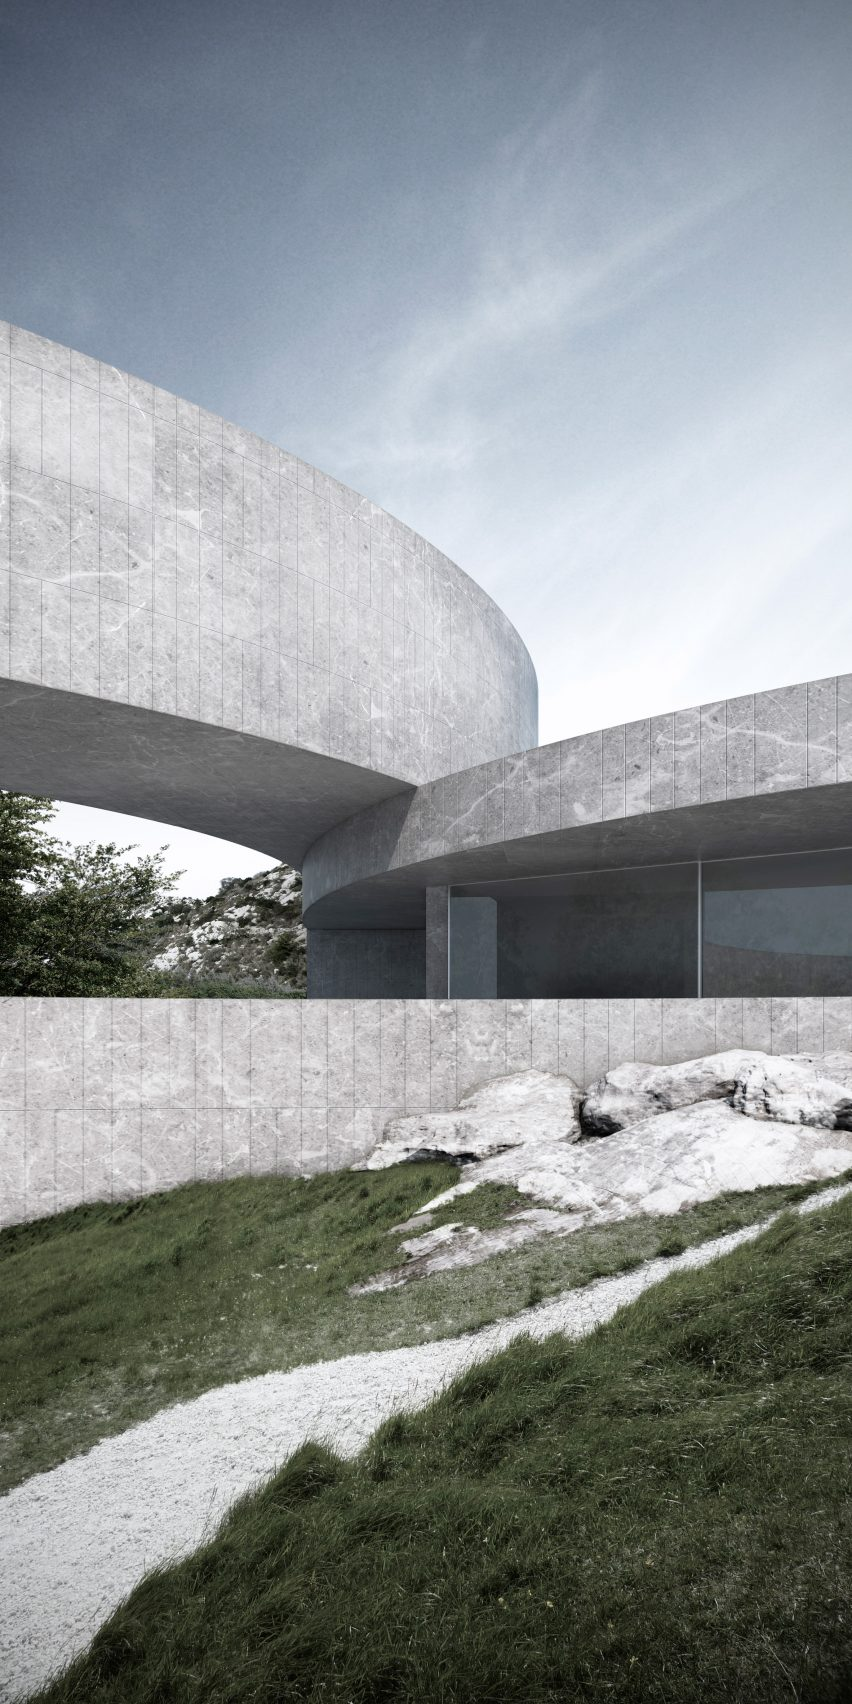 House of Seven gardens by Fran Silvestre Arquitectos